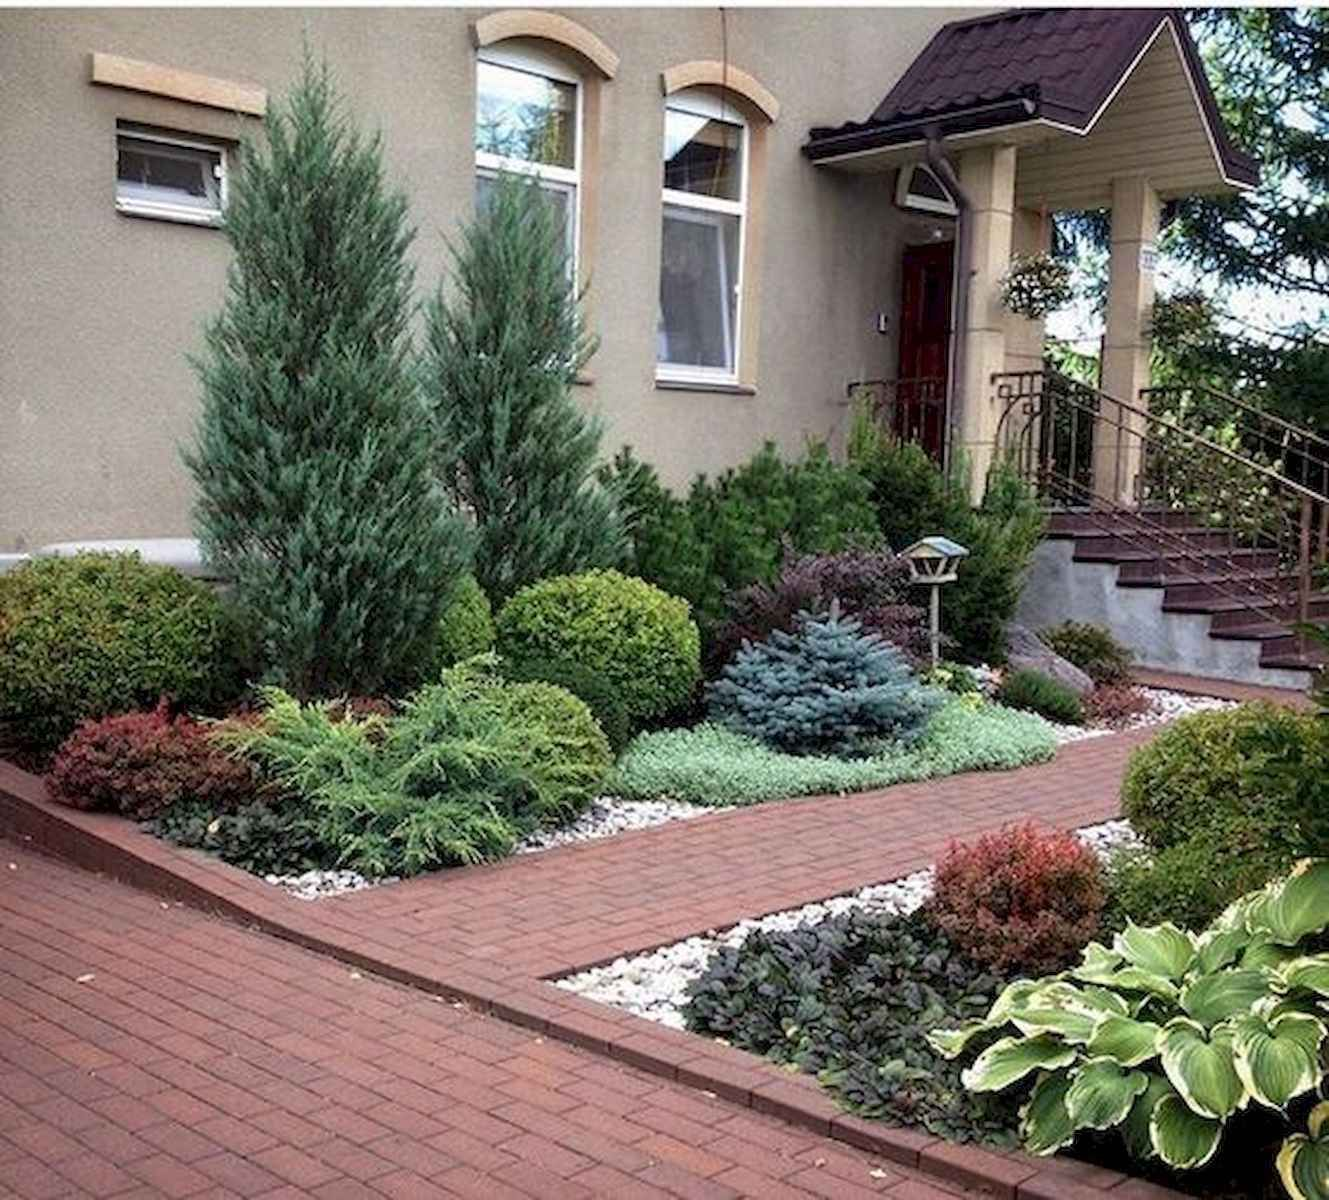 Front Yard Landscaping Ideas On A Budget: 90 Simple And Beautiful Front Yard Landscaping Ideas On A